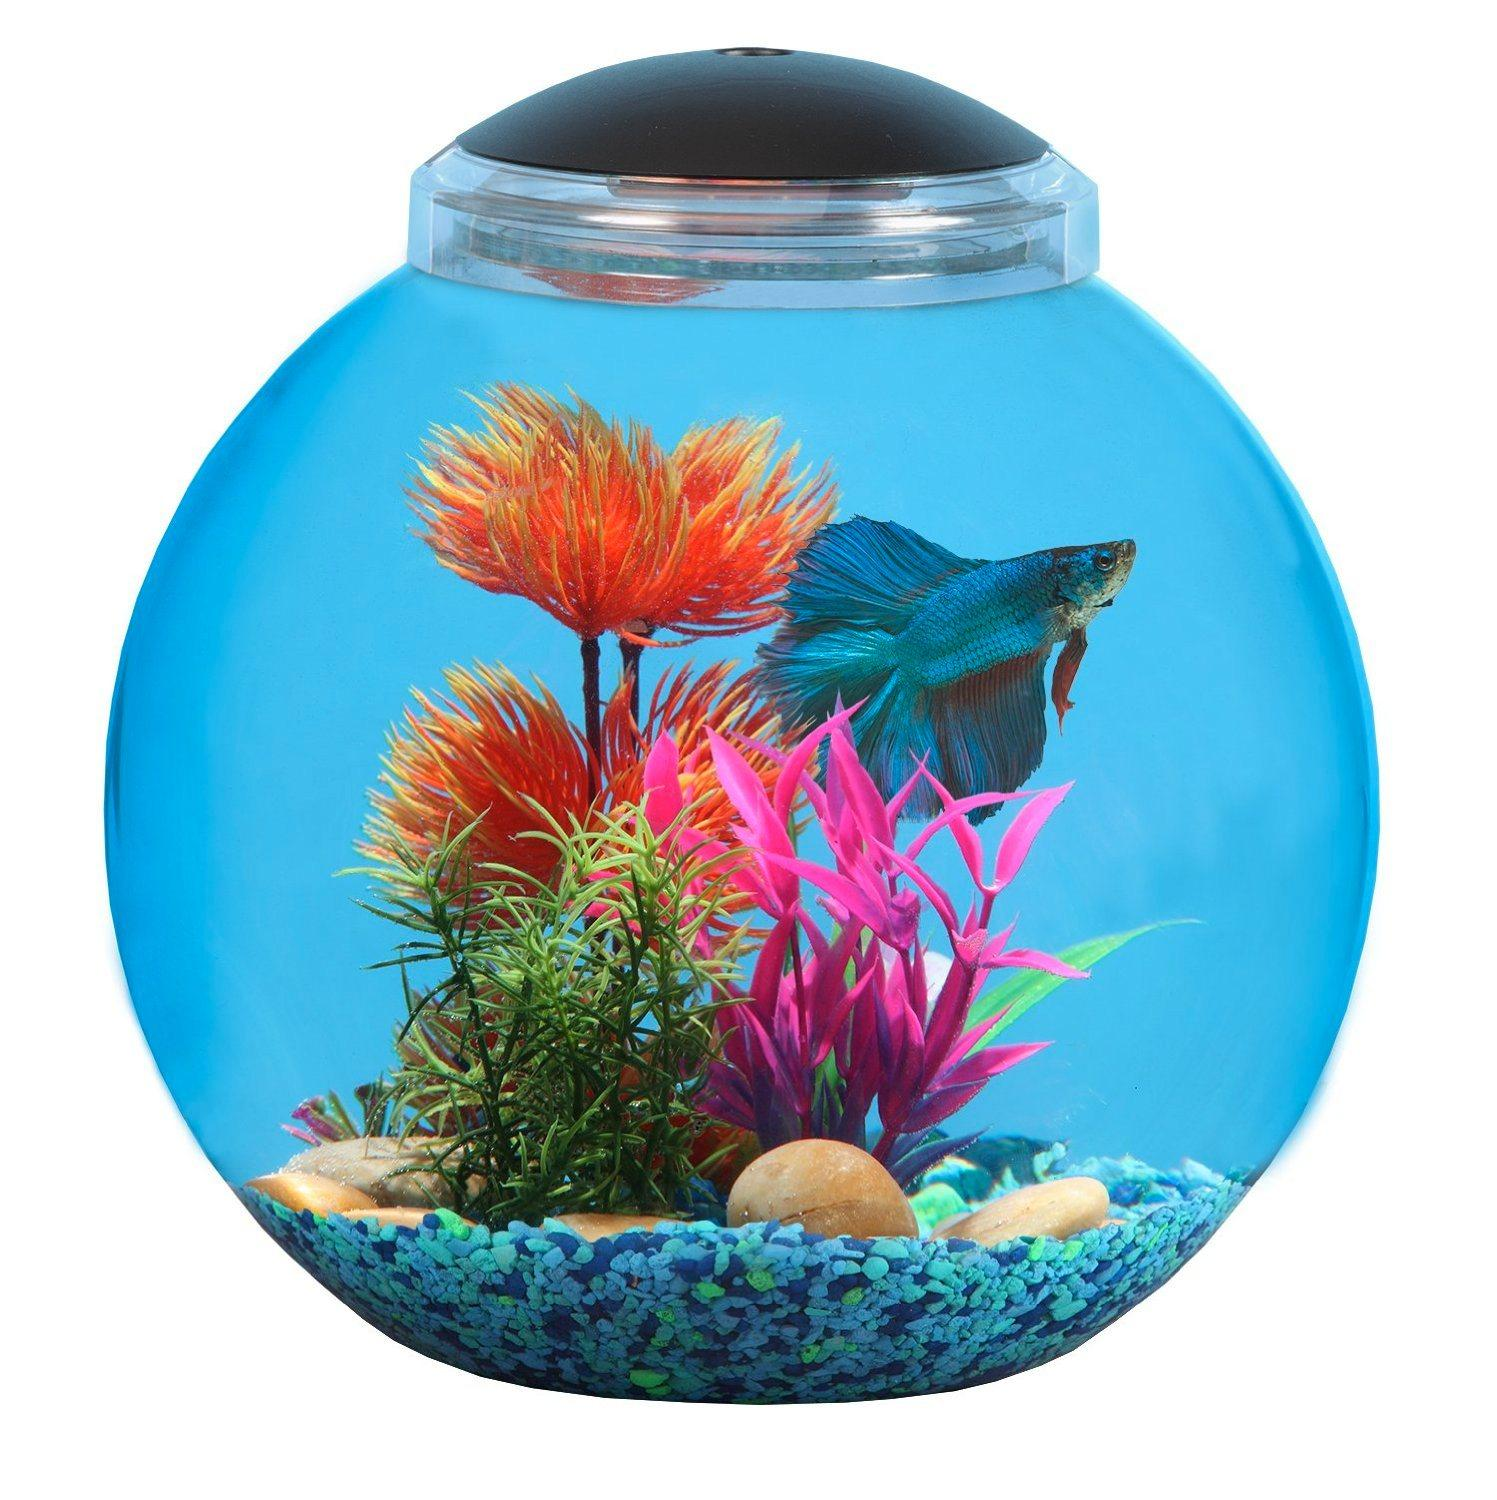 Api betta kit fish tank 3 gallon pet supplies for Betta fish tanks amazon